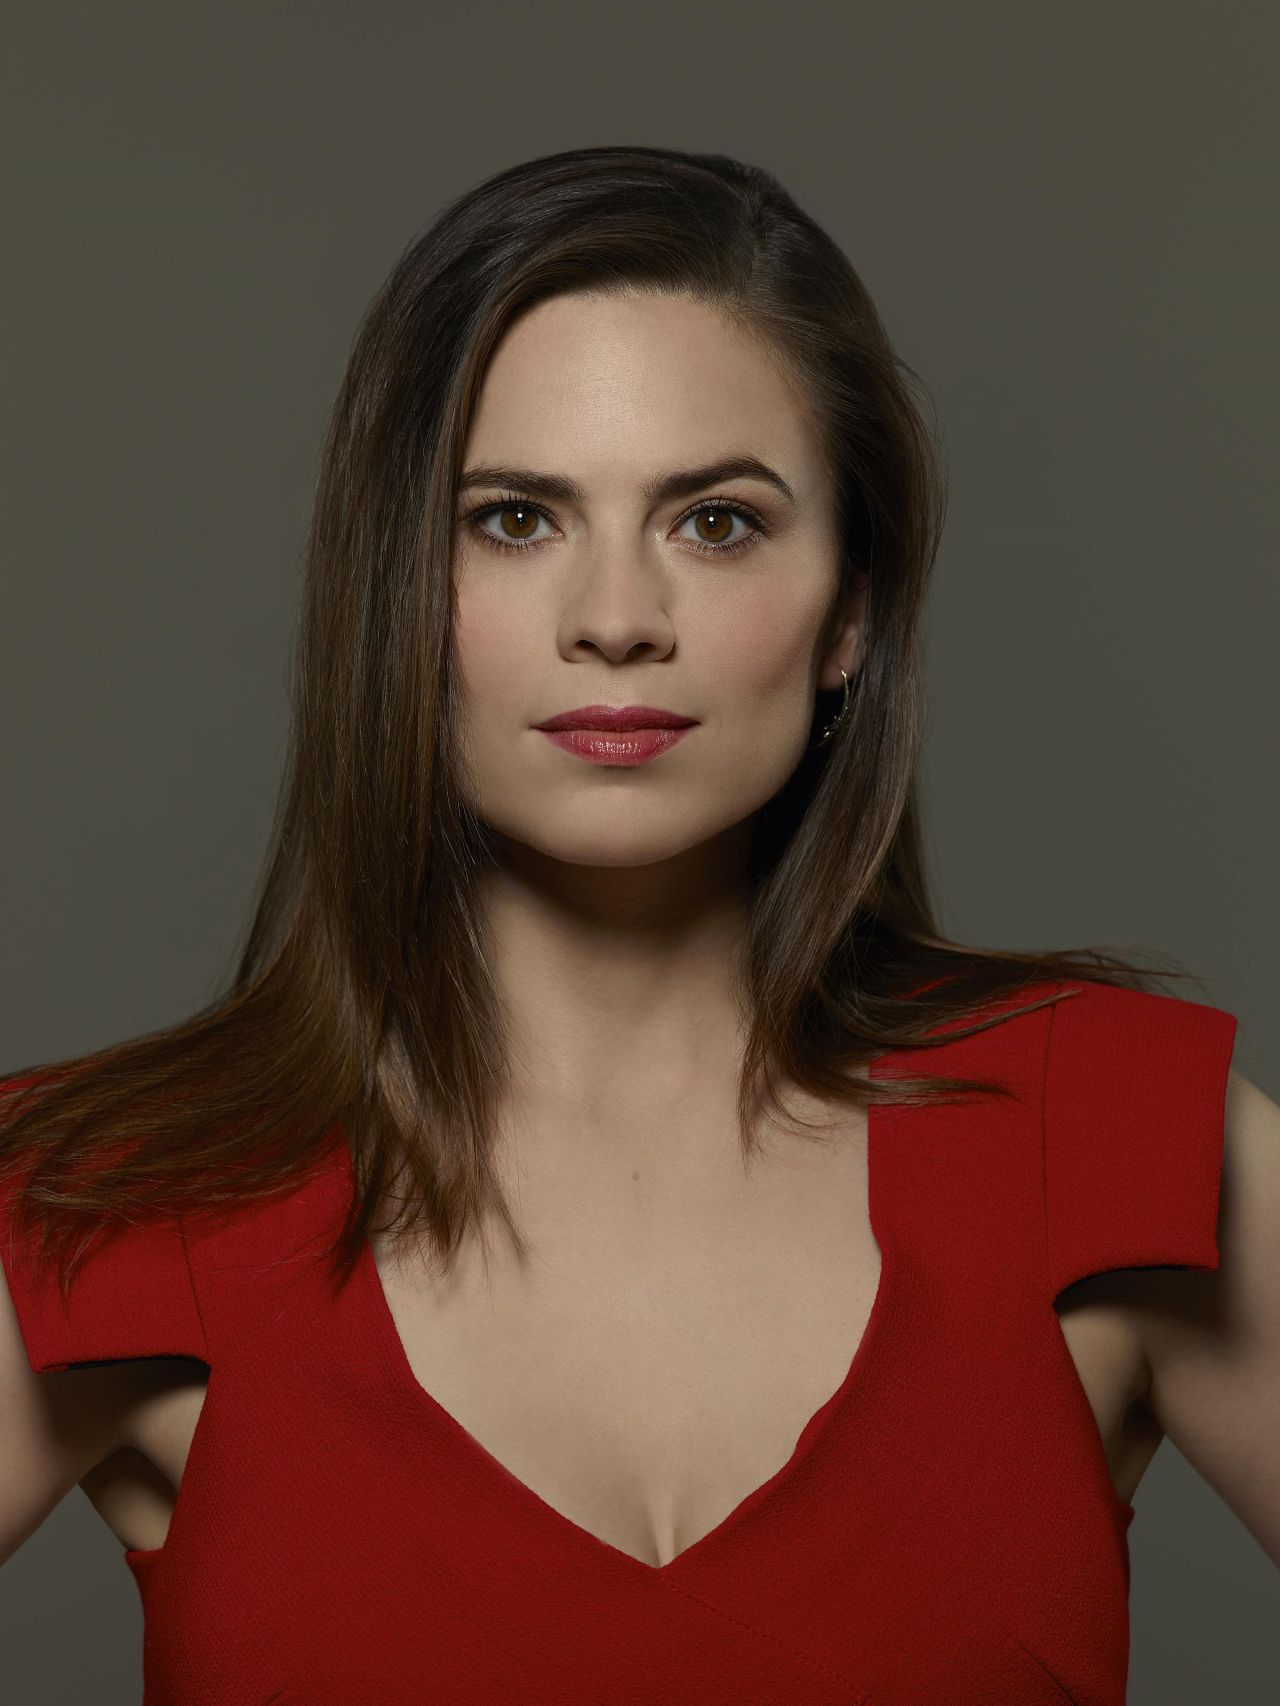 Hayley Atwell nudes (55 photos) Fappening, Facebook, cleavage